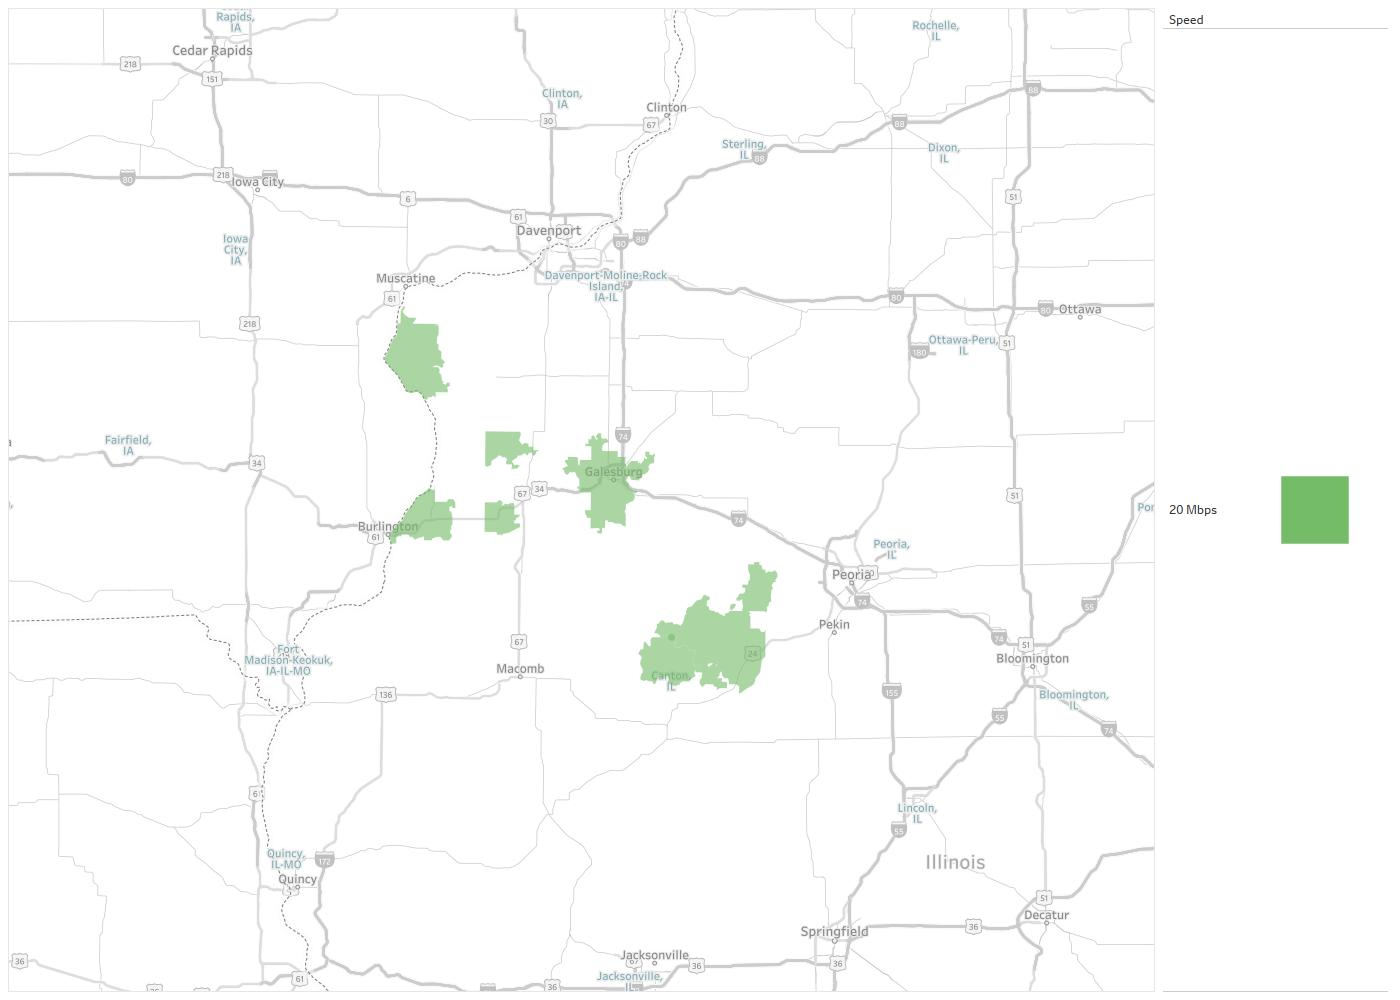 Nova Cablevision Availability Areas & Coverage Map | Decision Data on